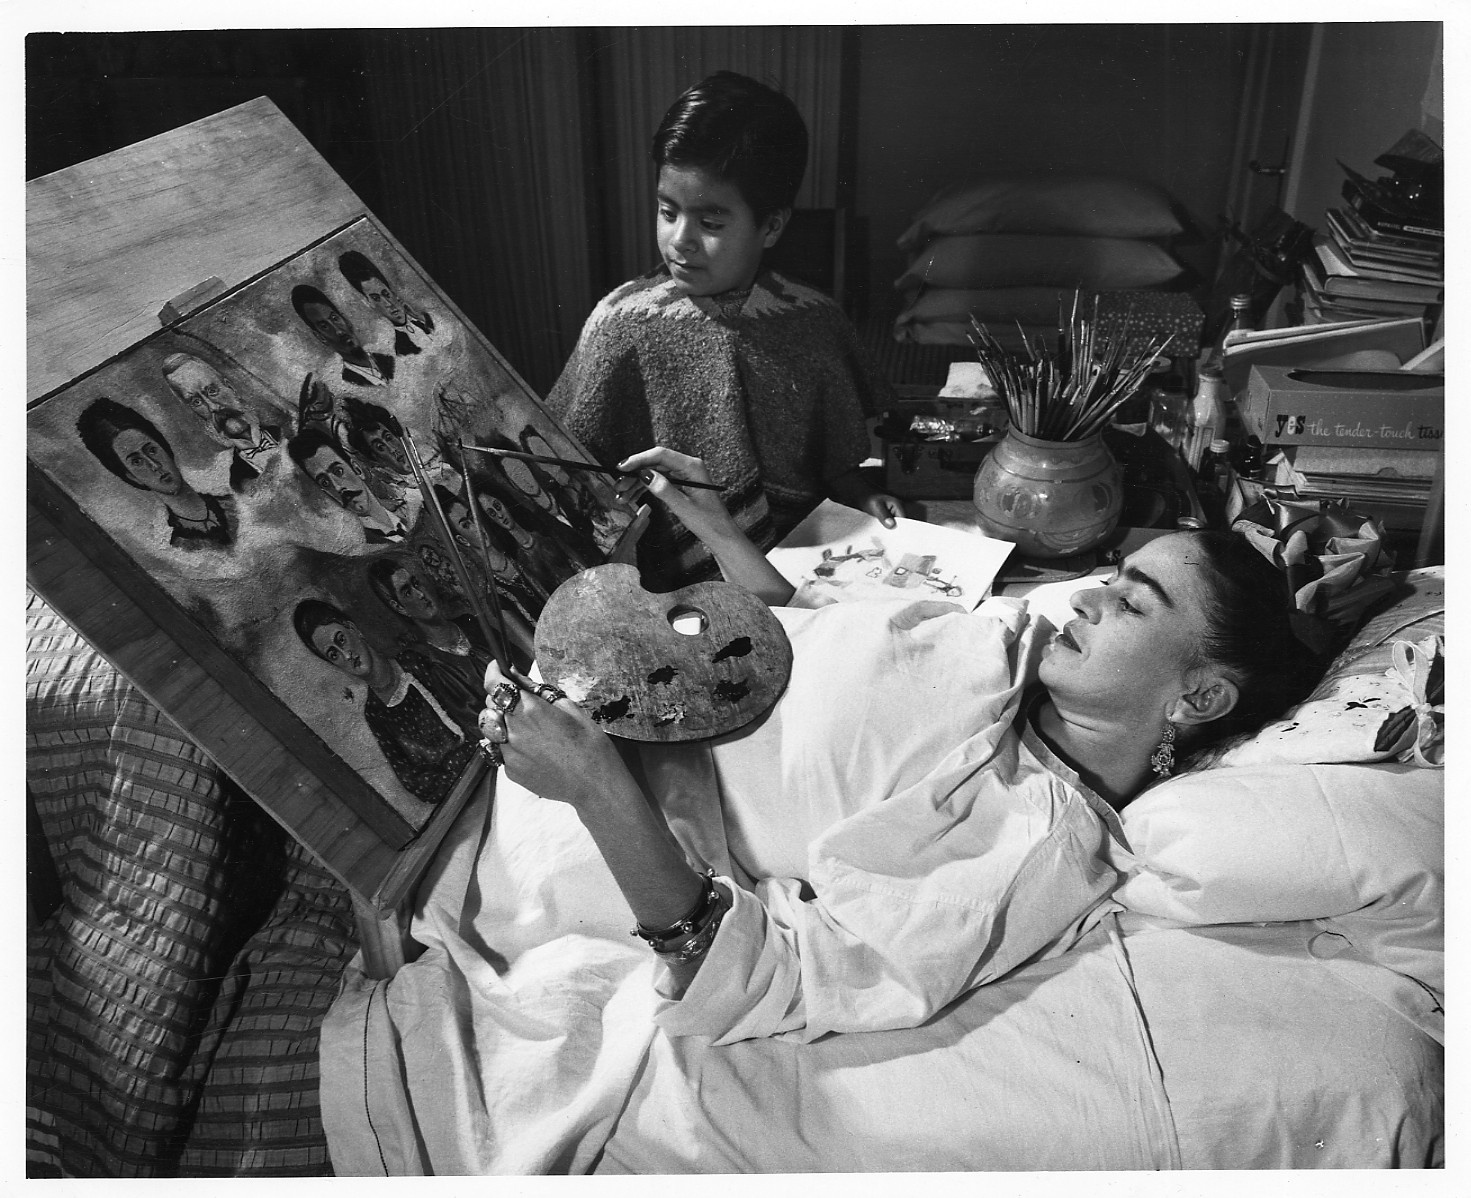 Frida Kahlo Recovering from Terrible Bus Accident